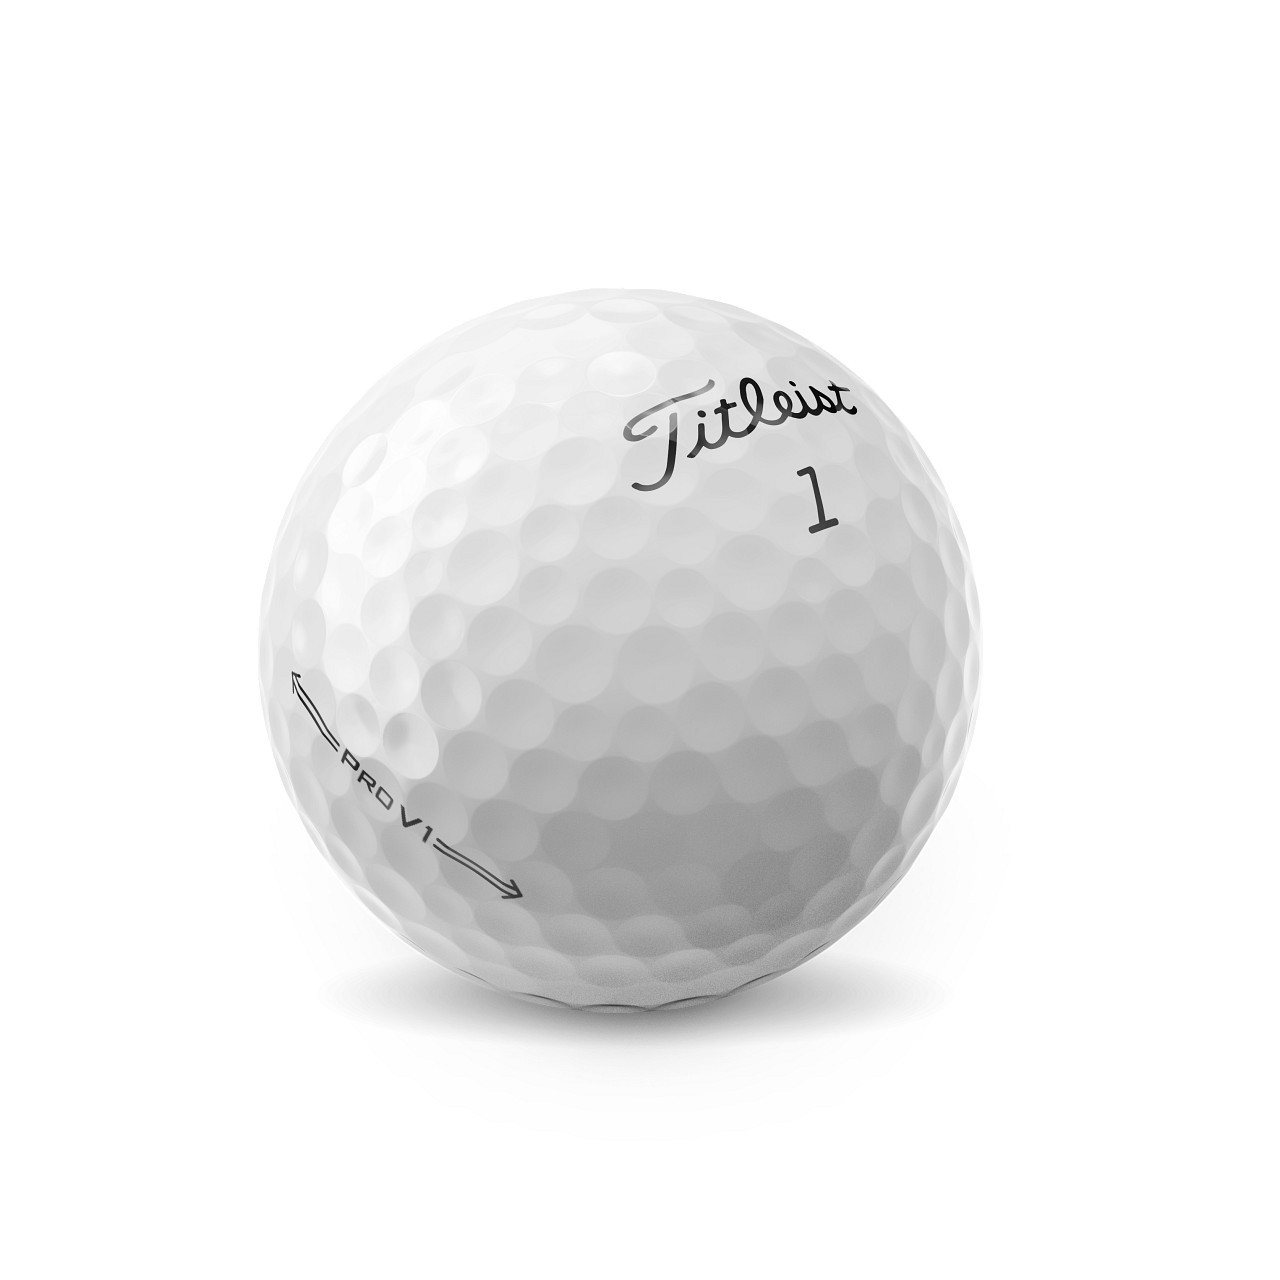 Titleist Pro V1 Dozen Golf Balls 2021 - Low Numbers (#1 - #4)